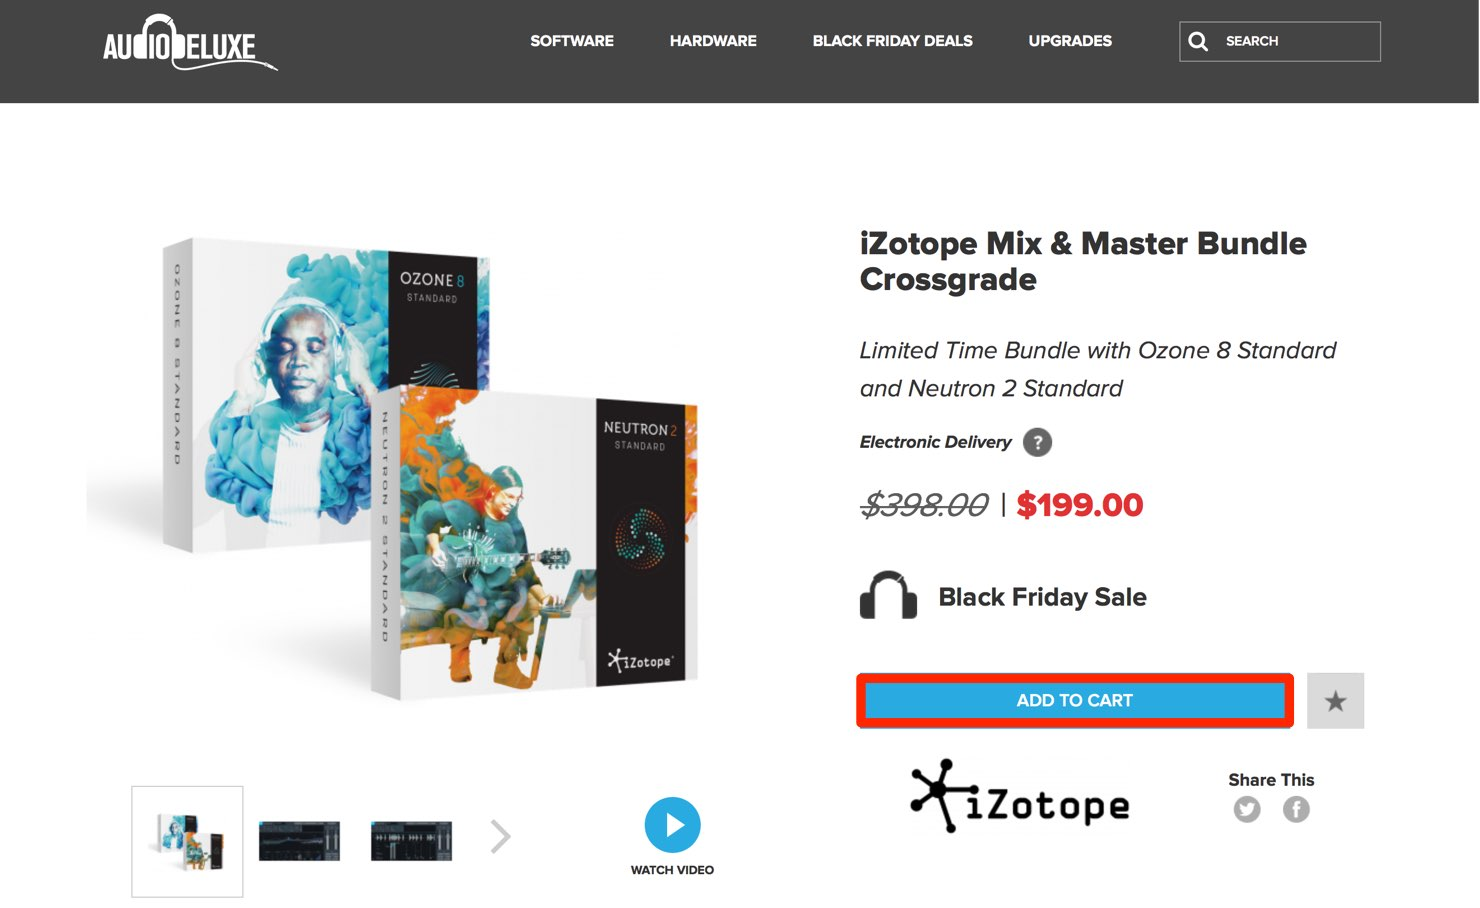 iZotope Mix & Master Bundle Crossgrade | AudioDeluxe